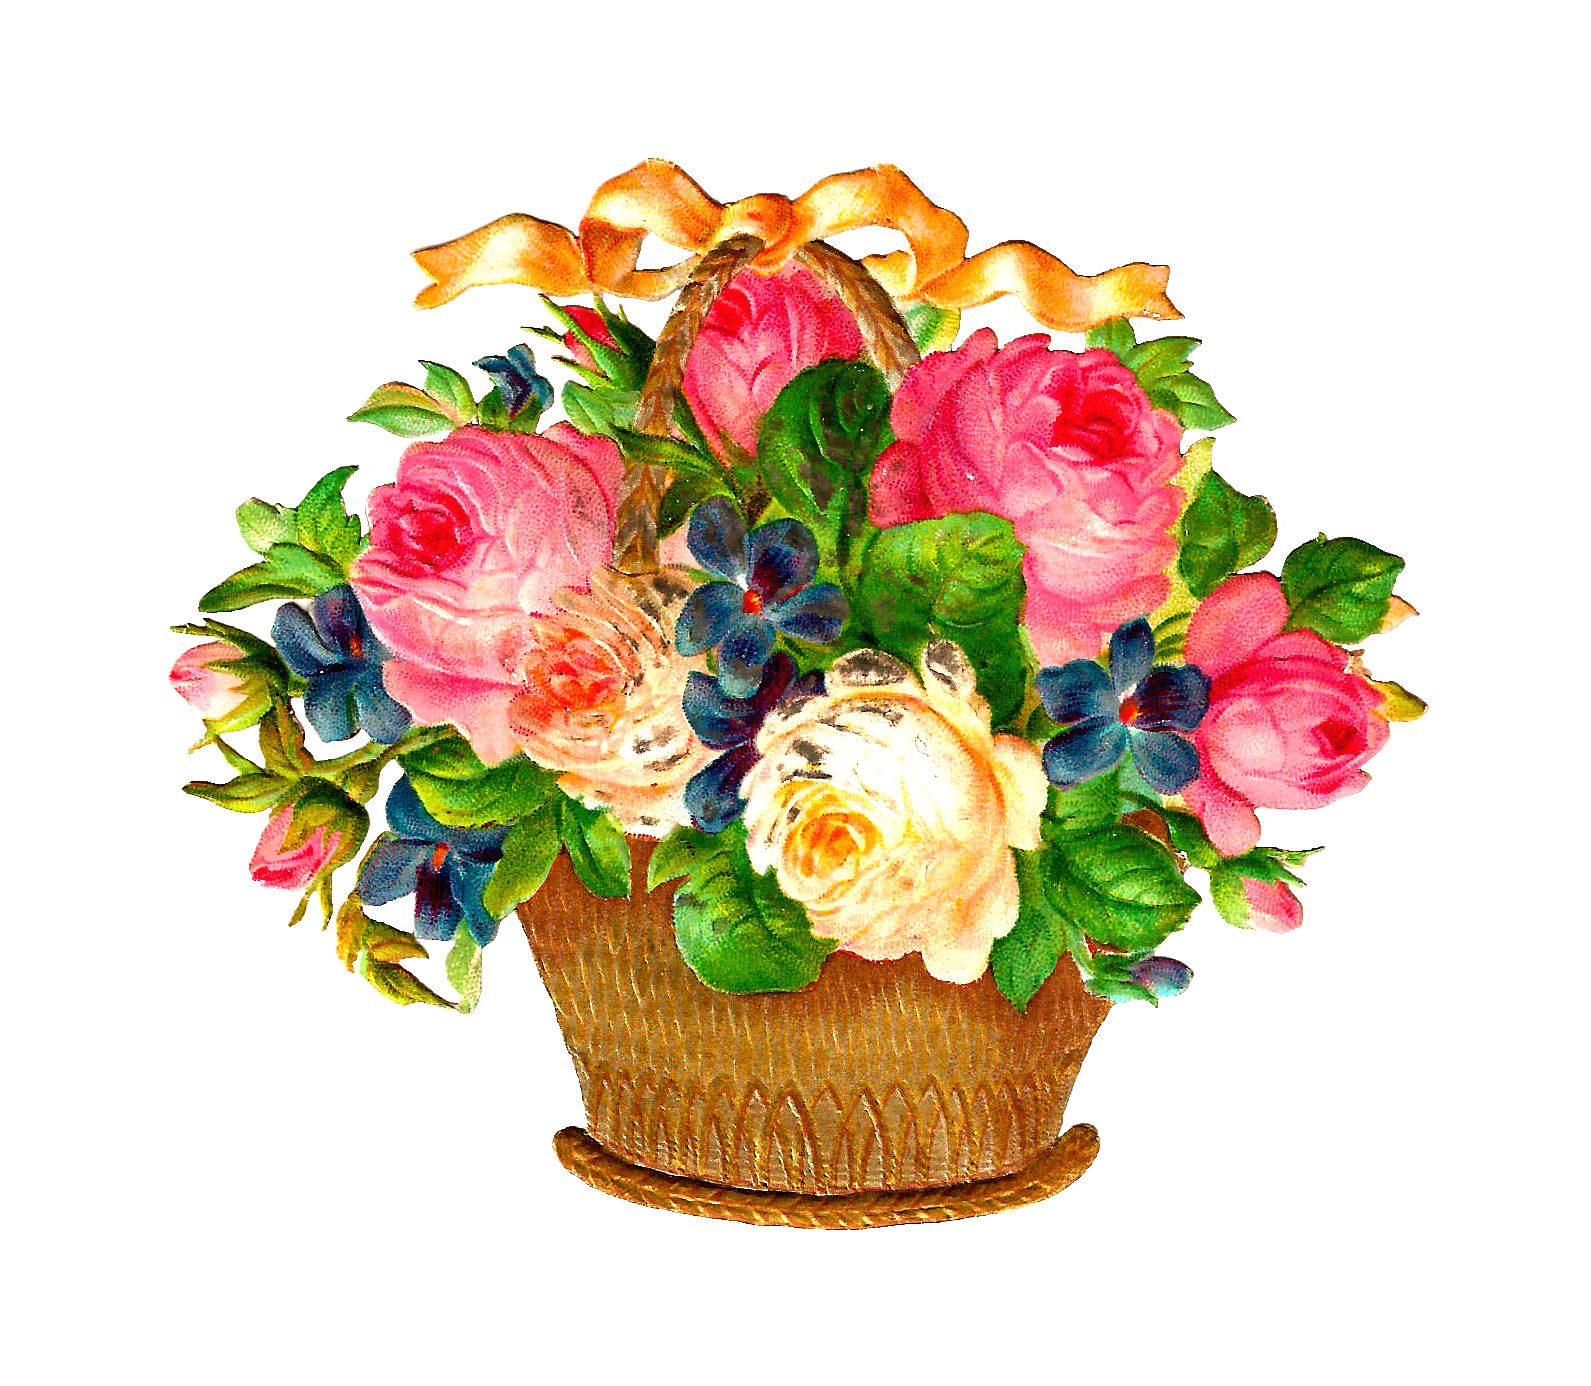 Flower Baskets Photos : Antique images free flower basket graphic pink and white